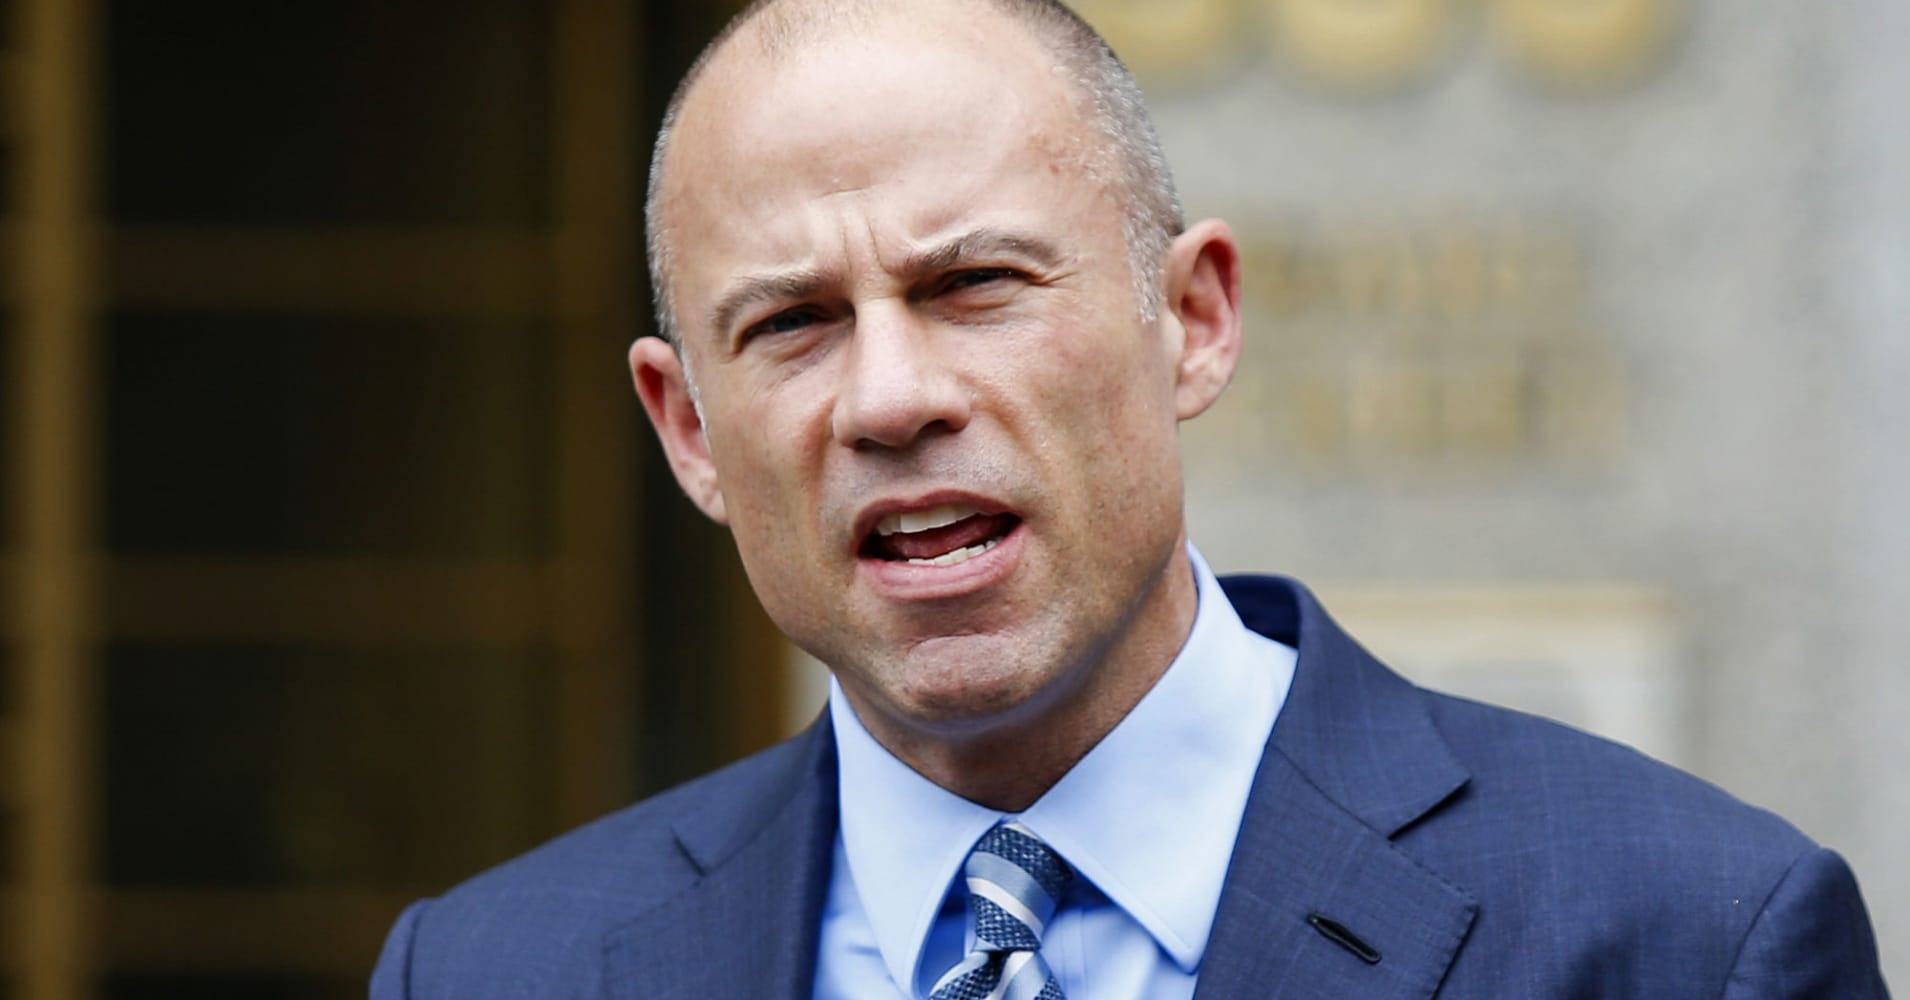 LA prosecutor declines felony abuse case against Stormy Daniels' attorney Michael Avenatti